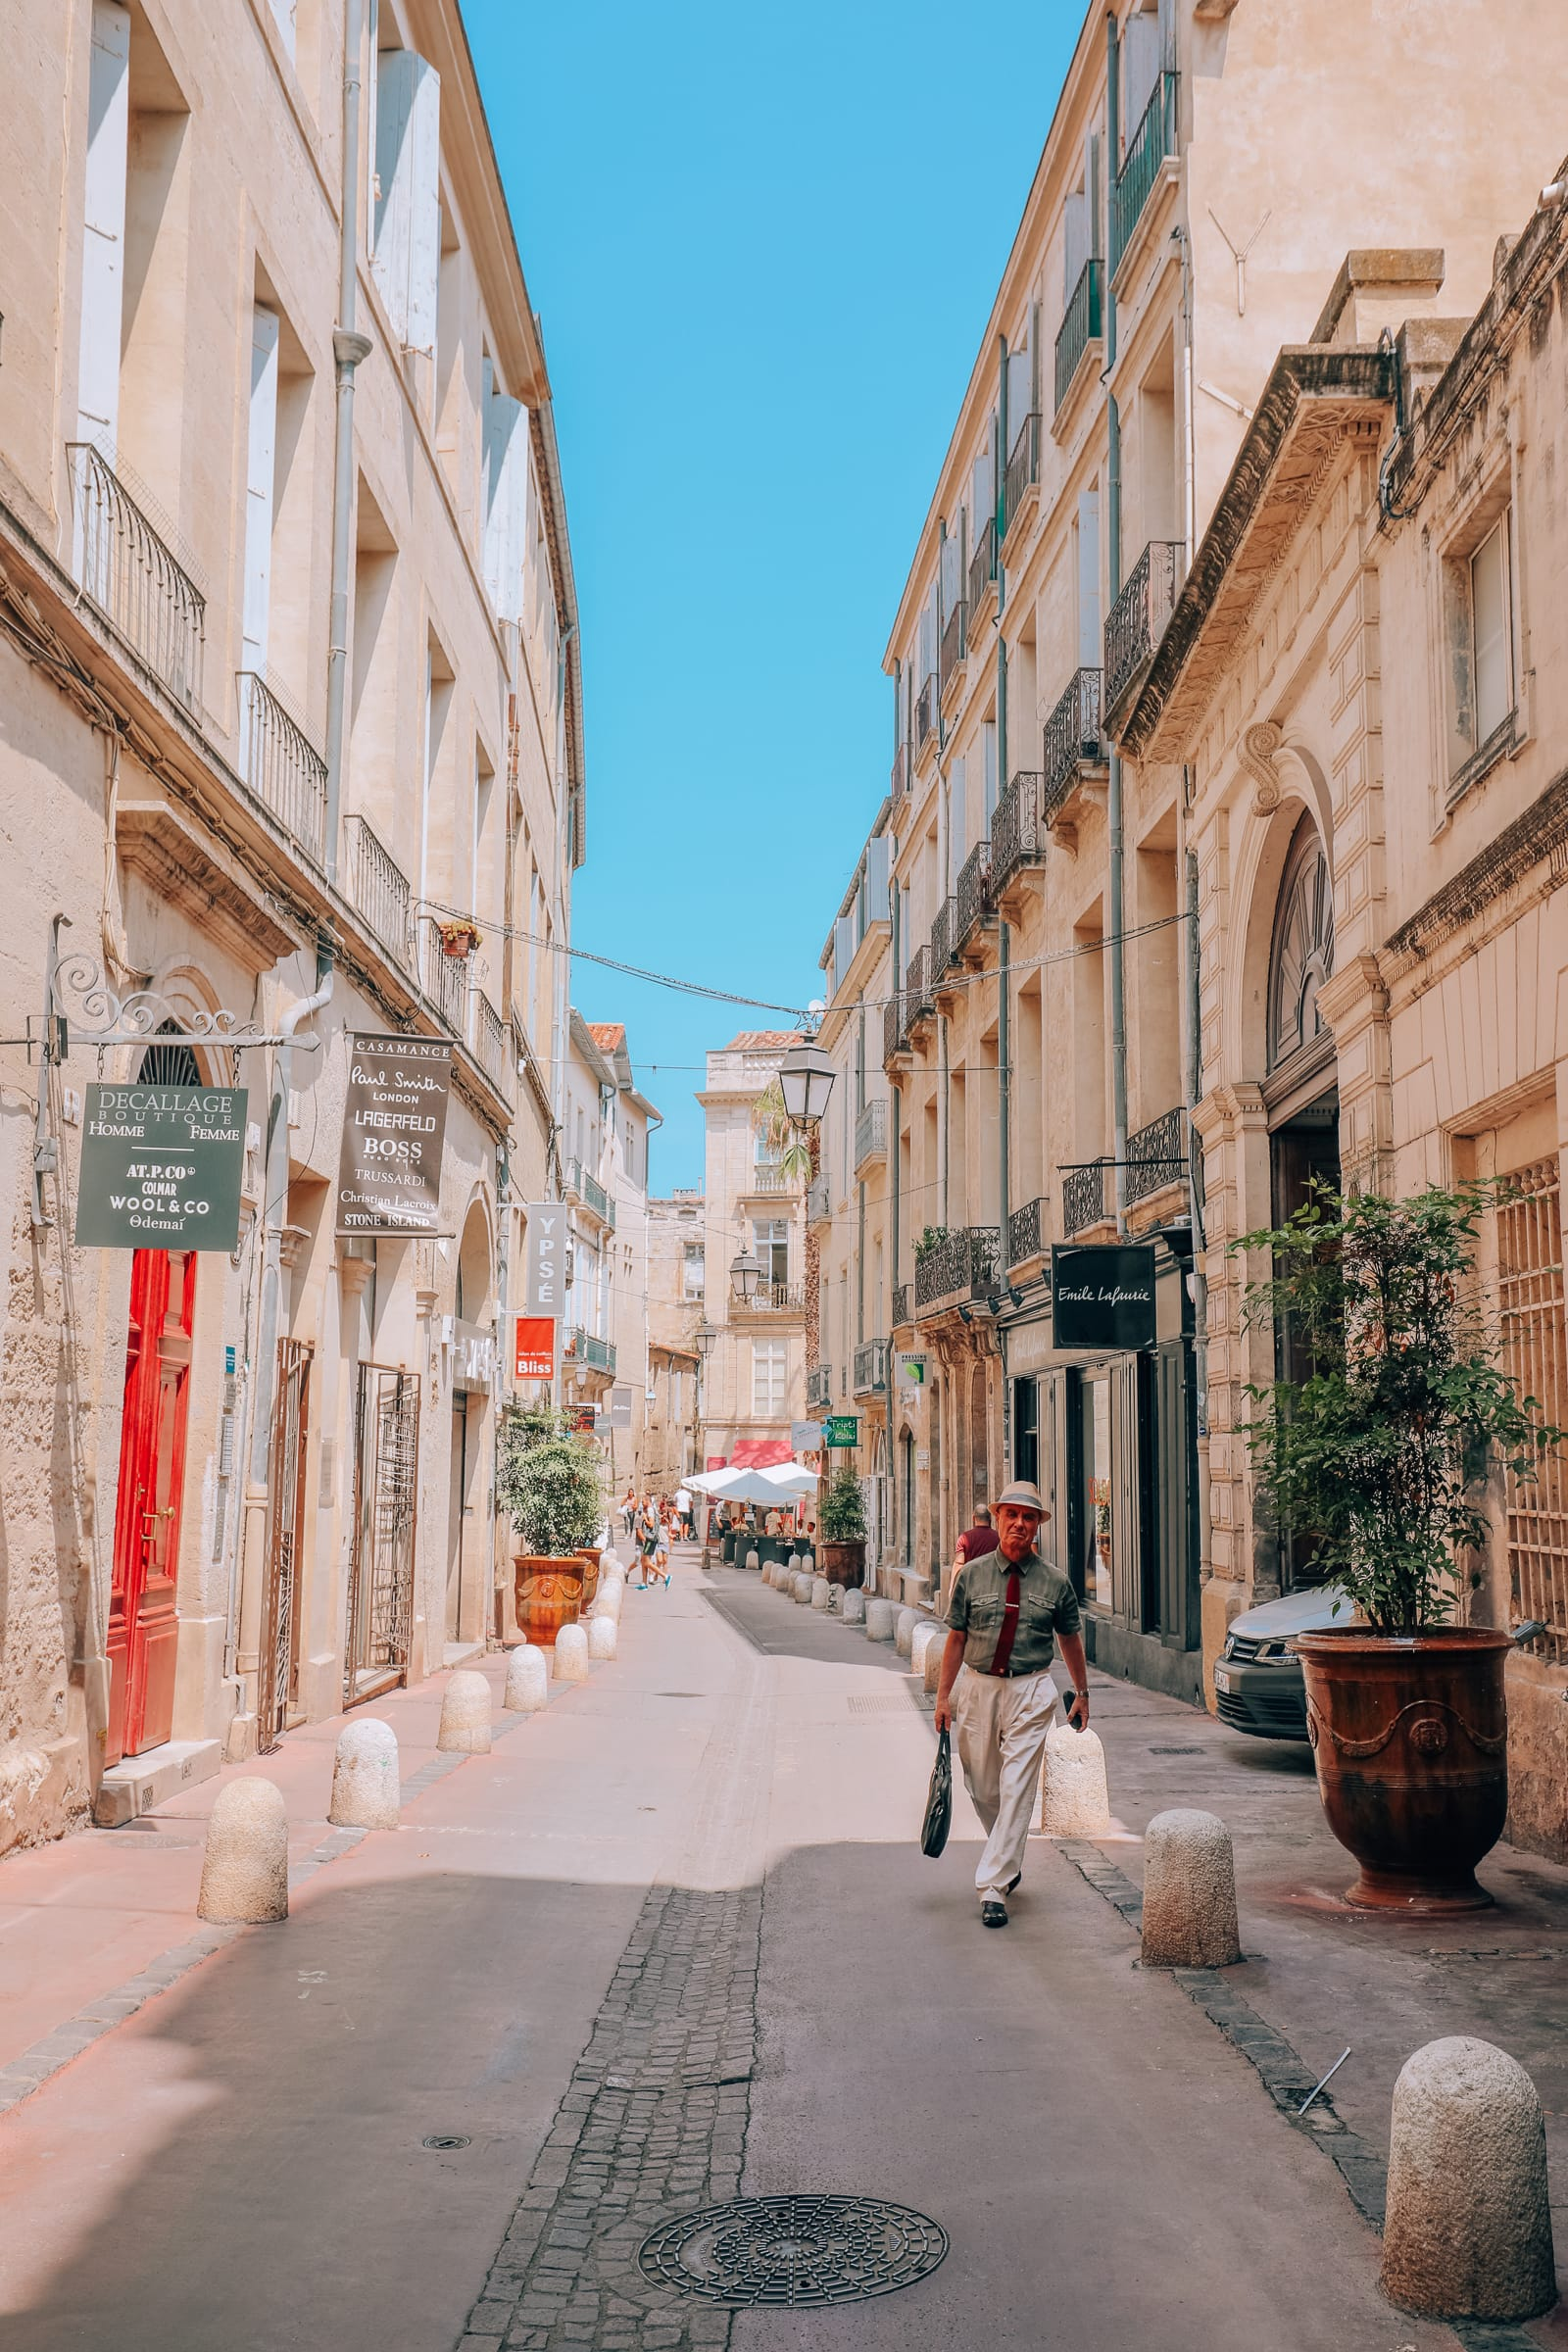 Finding Picasso And Soulages In Montpellier - The South Of France's Pretty City (43)